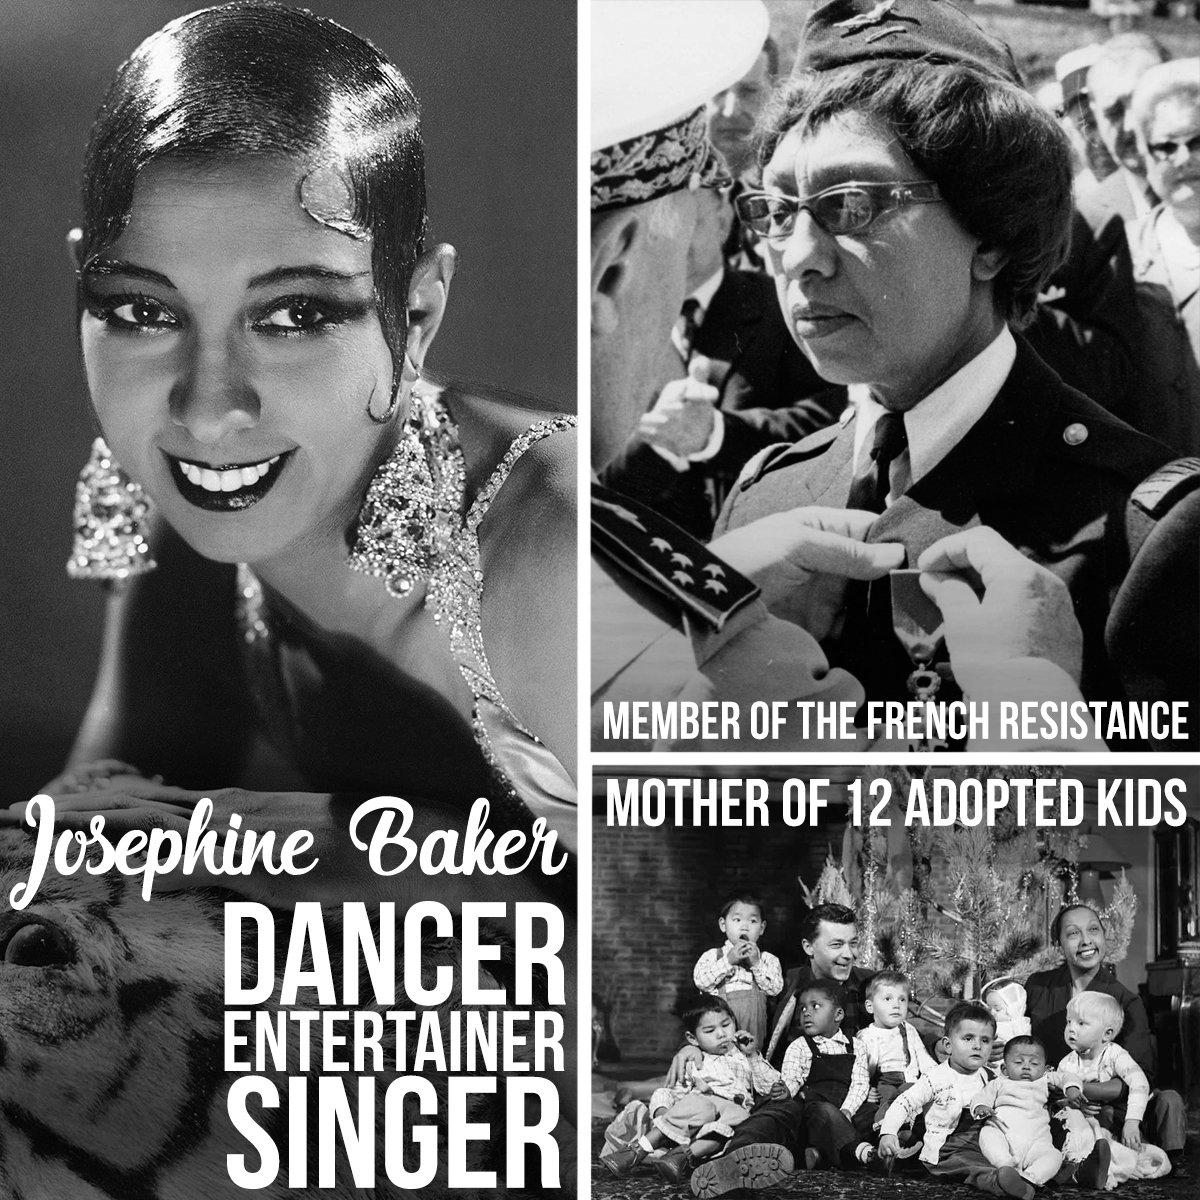 I have two loves, my country and Paris said American performer Josephine Baker in her 1930 song Jai Deux Amours. Baker was a beloved artist in France, who also took part in the French Resistance during World War II. Learn more: goo.gl/iJA7Kp  #BlackHistoryMonth